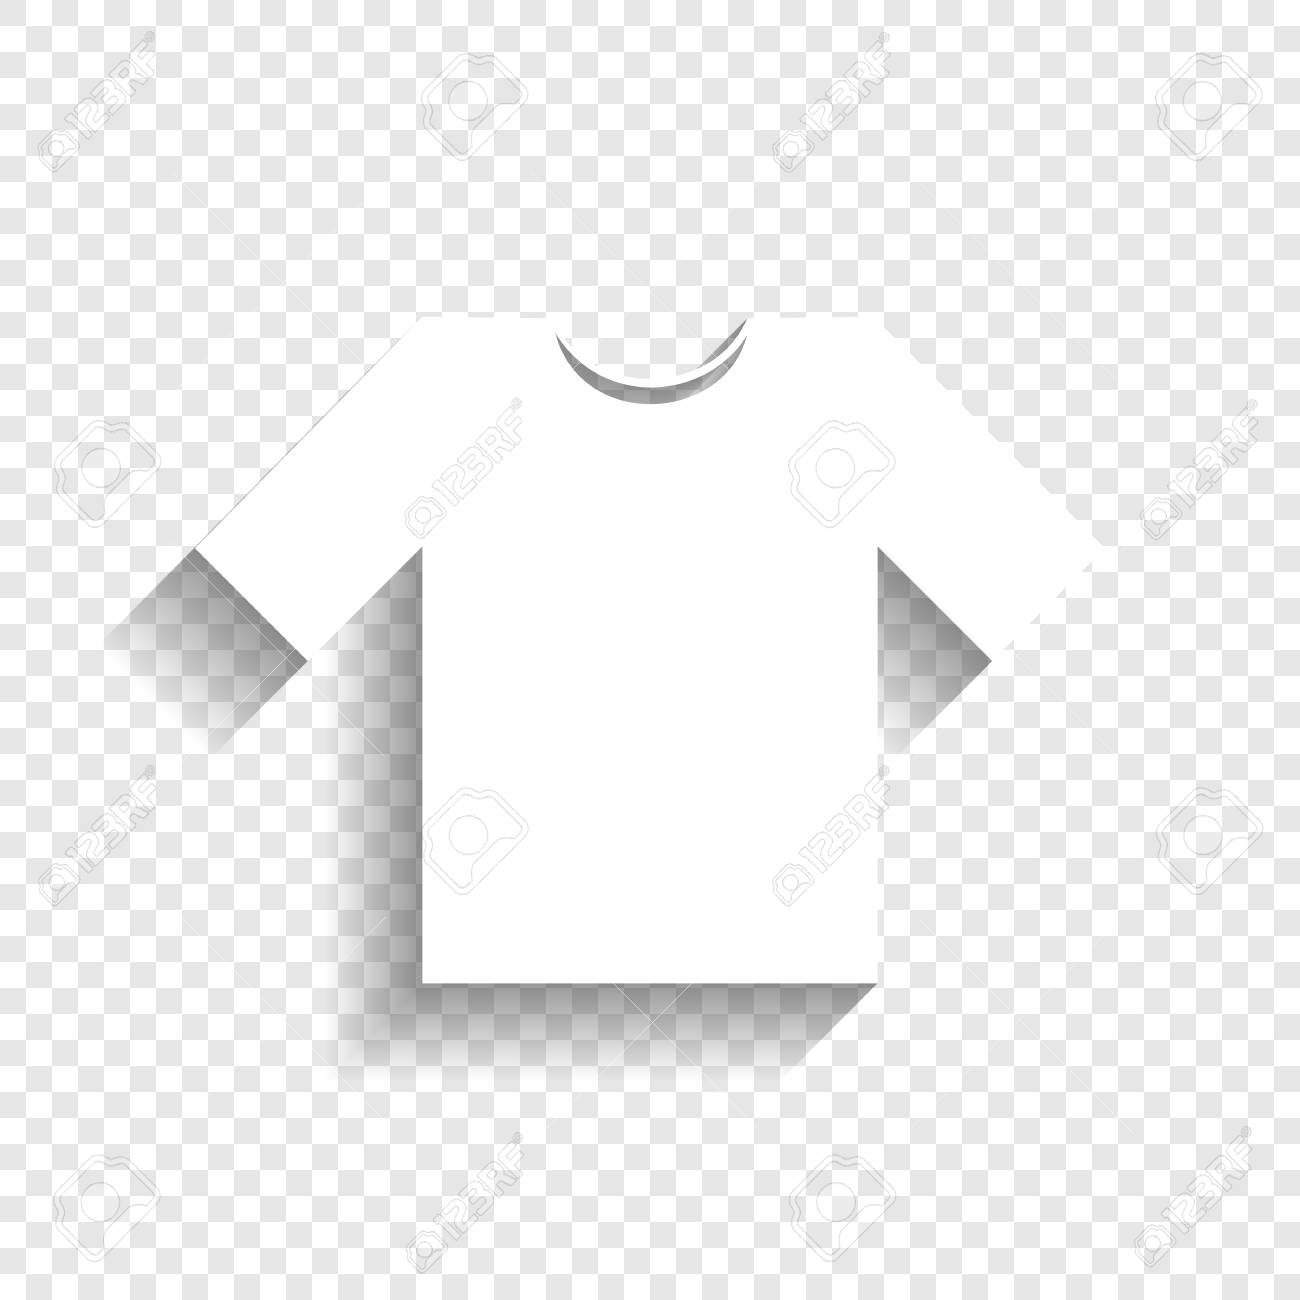 t shirt sign illustration vector white icon with soft shadow royalty free cliparts vectors and stock illustration image 80930152 123rf com